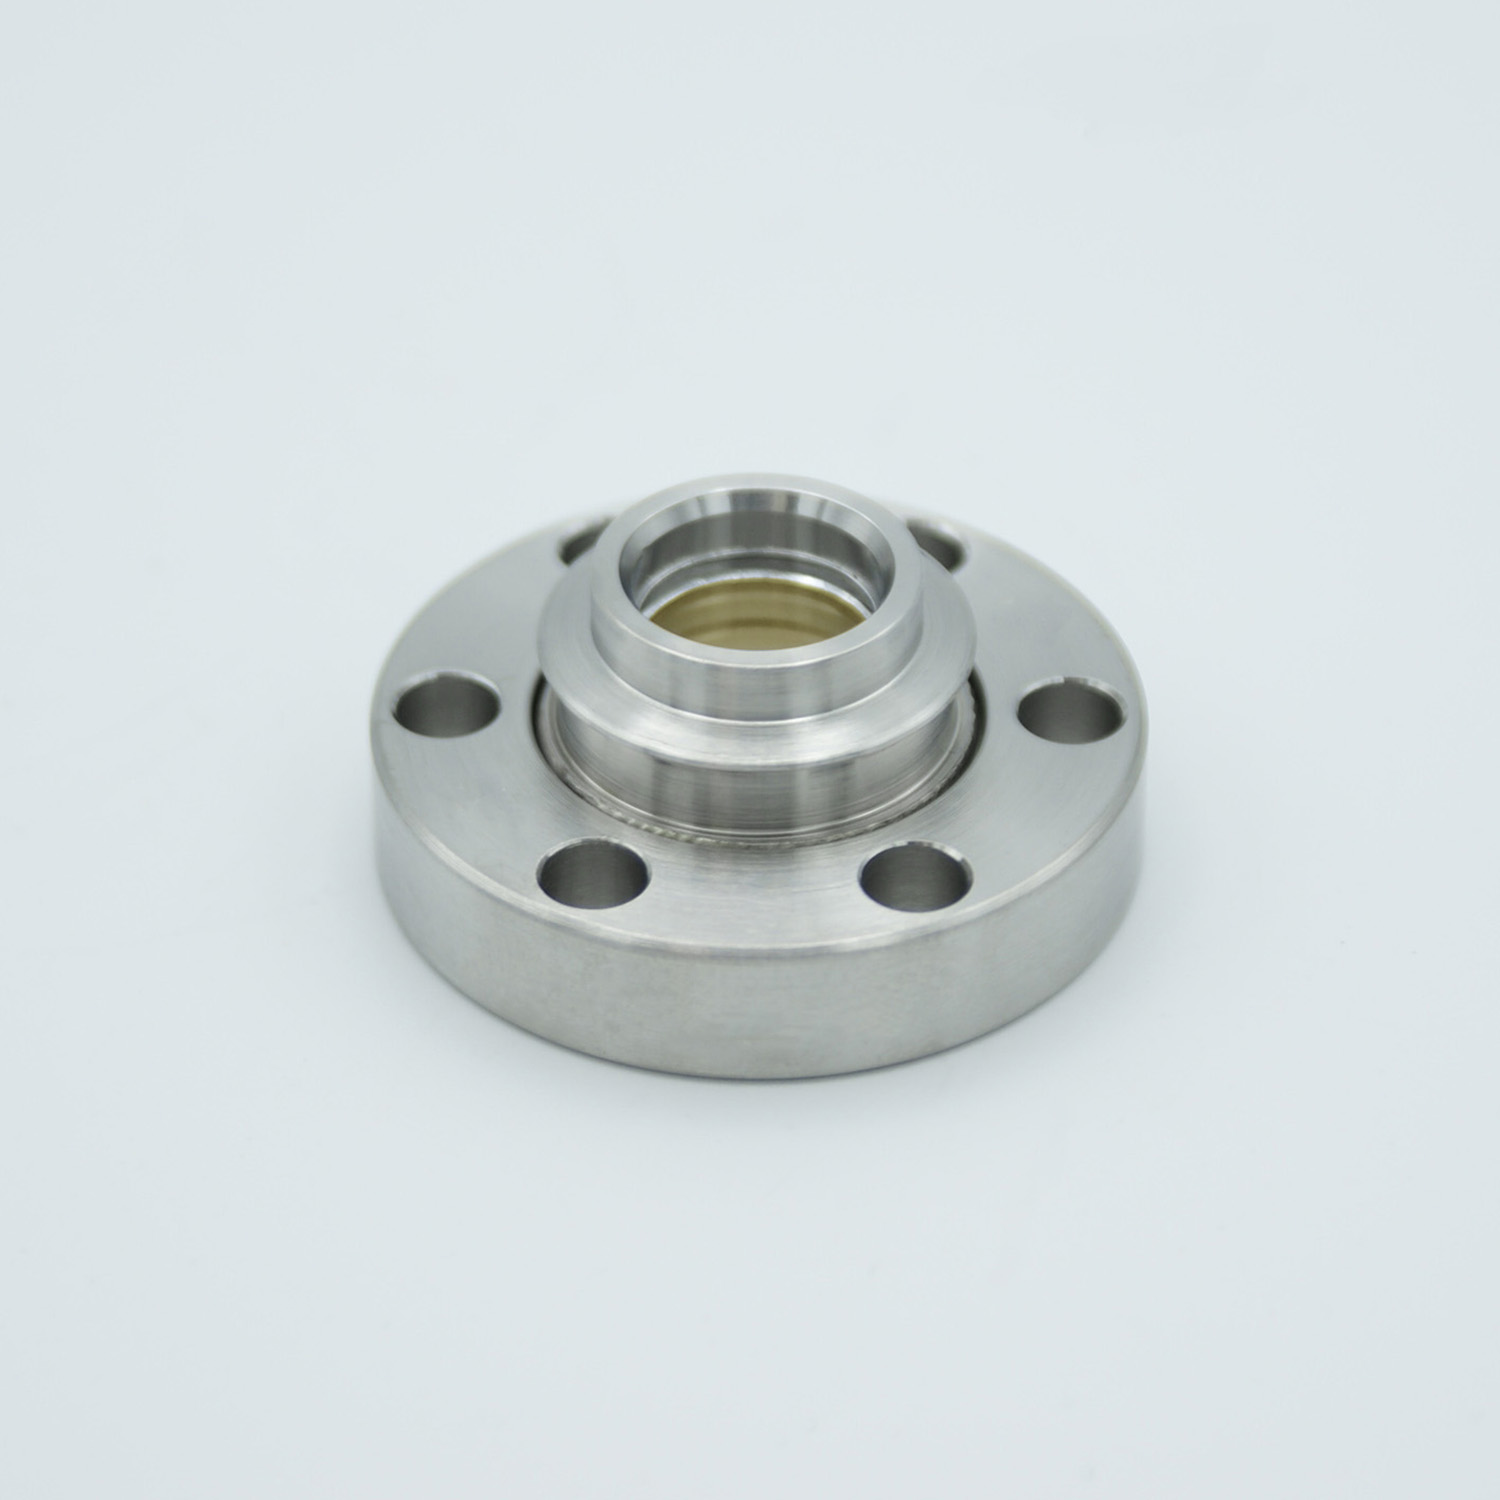 Zinc Selenide viewport (AR coated 8-12 micron), DN19CF non magnetic flange